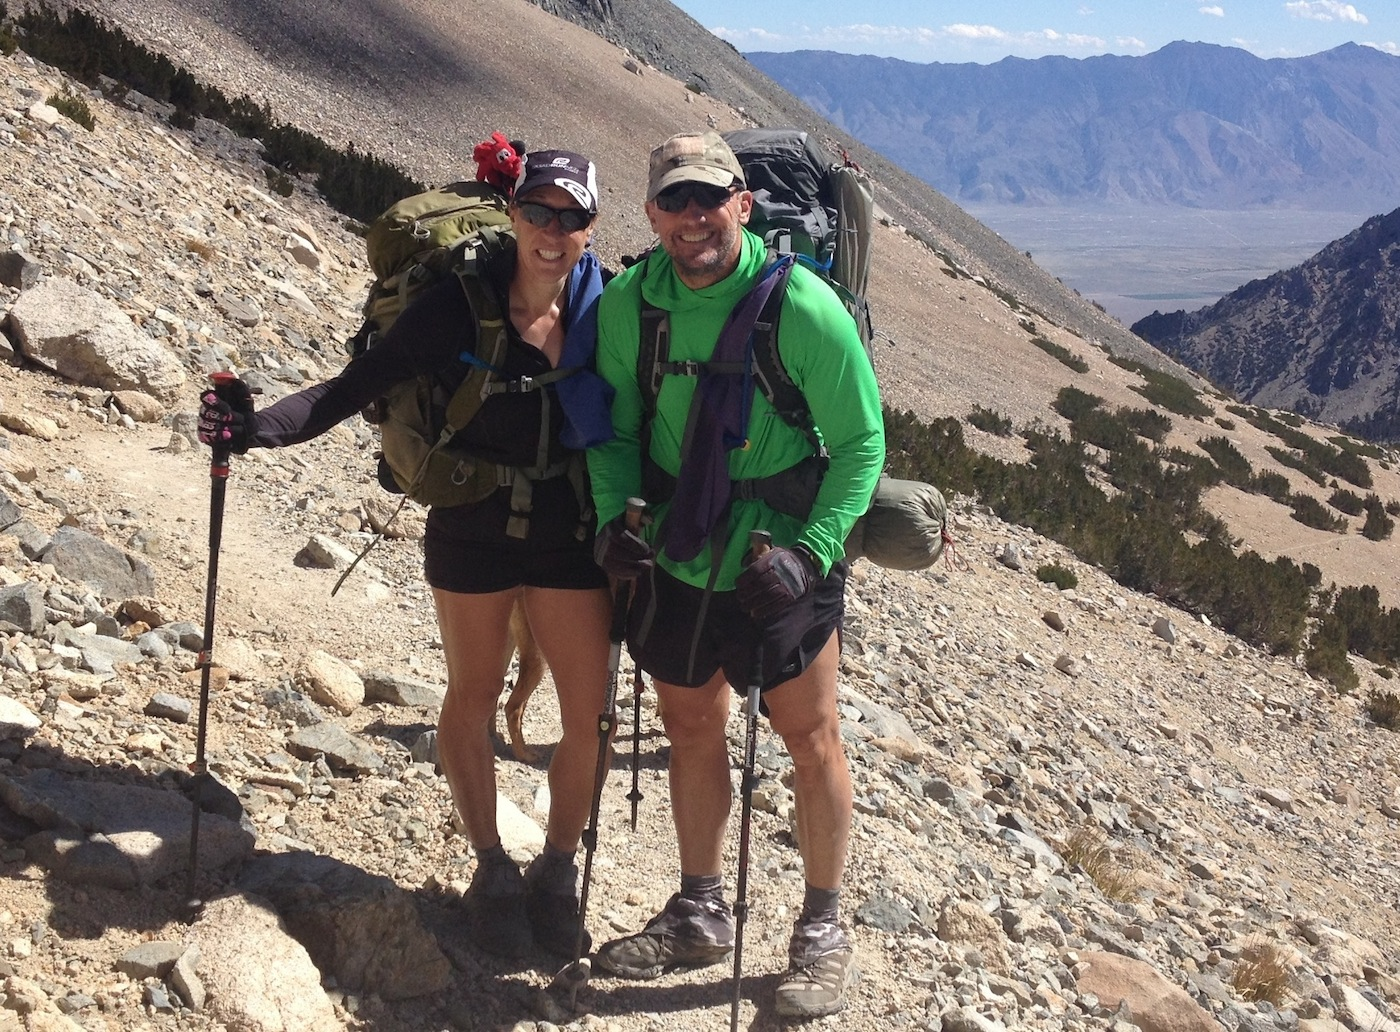 JMT hikers Beth and Tom from Vista, California, pause just below Kearsarge Pass on their way to Mt. Whitney after two relaxing days at the Base Camp.